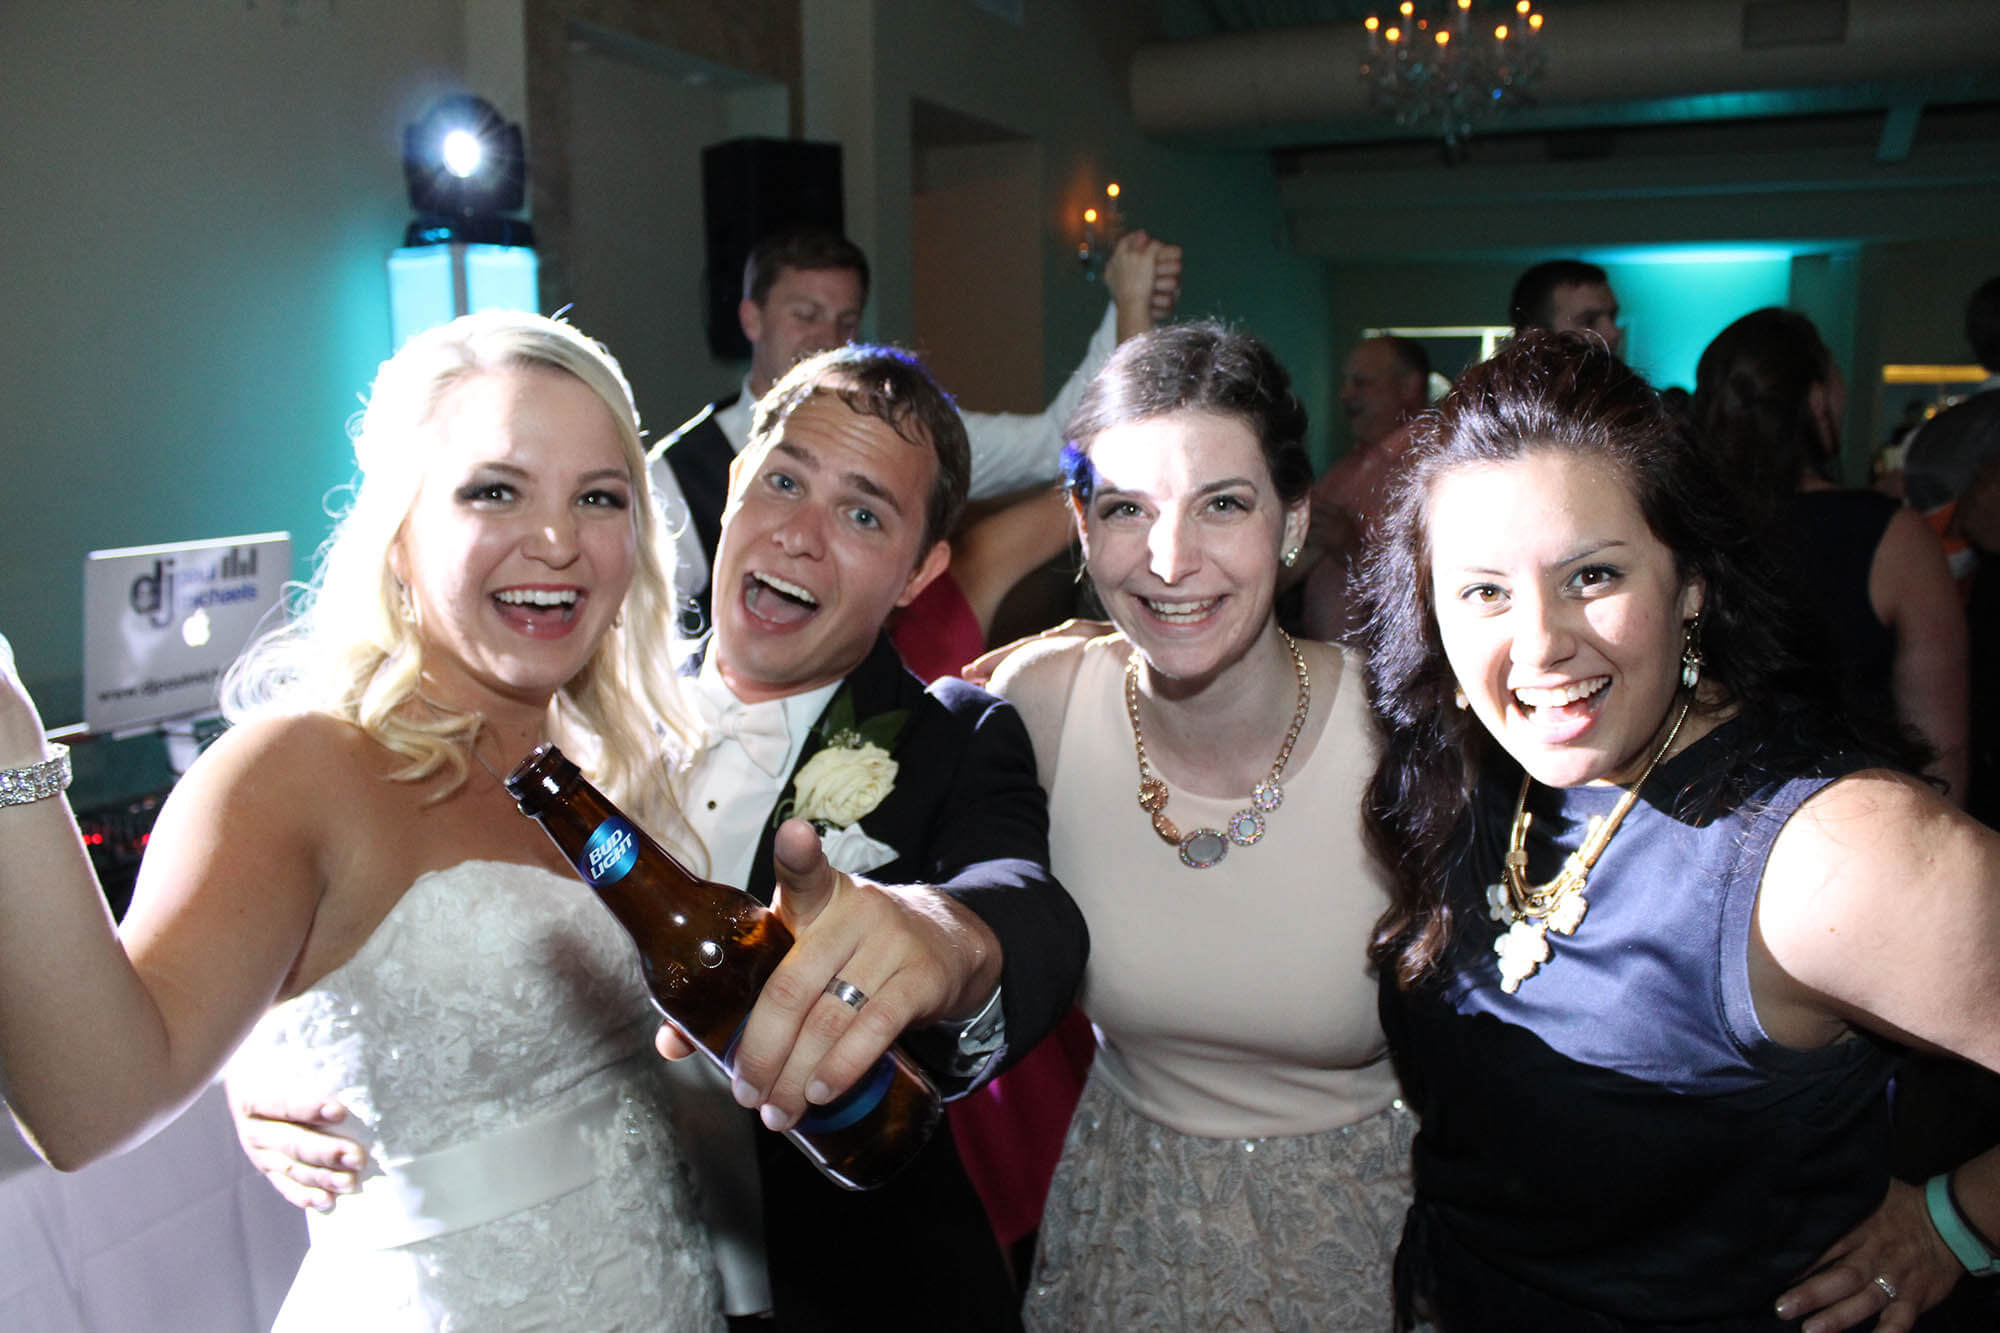 Wedding Guests Partying with Bride and Groom at Meson Sabika in Naperville Blog Cover